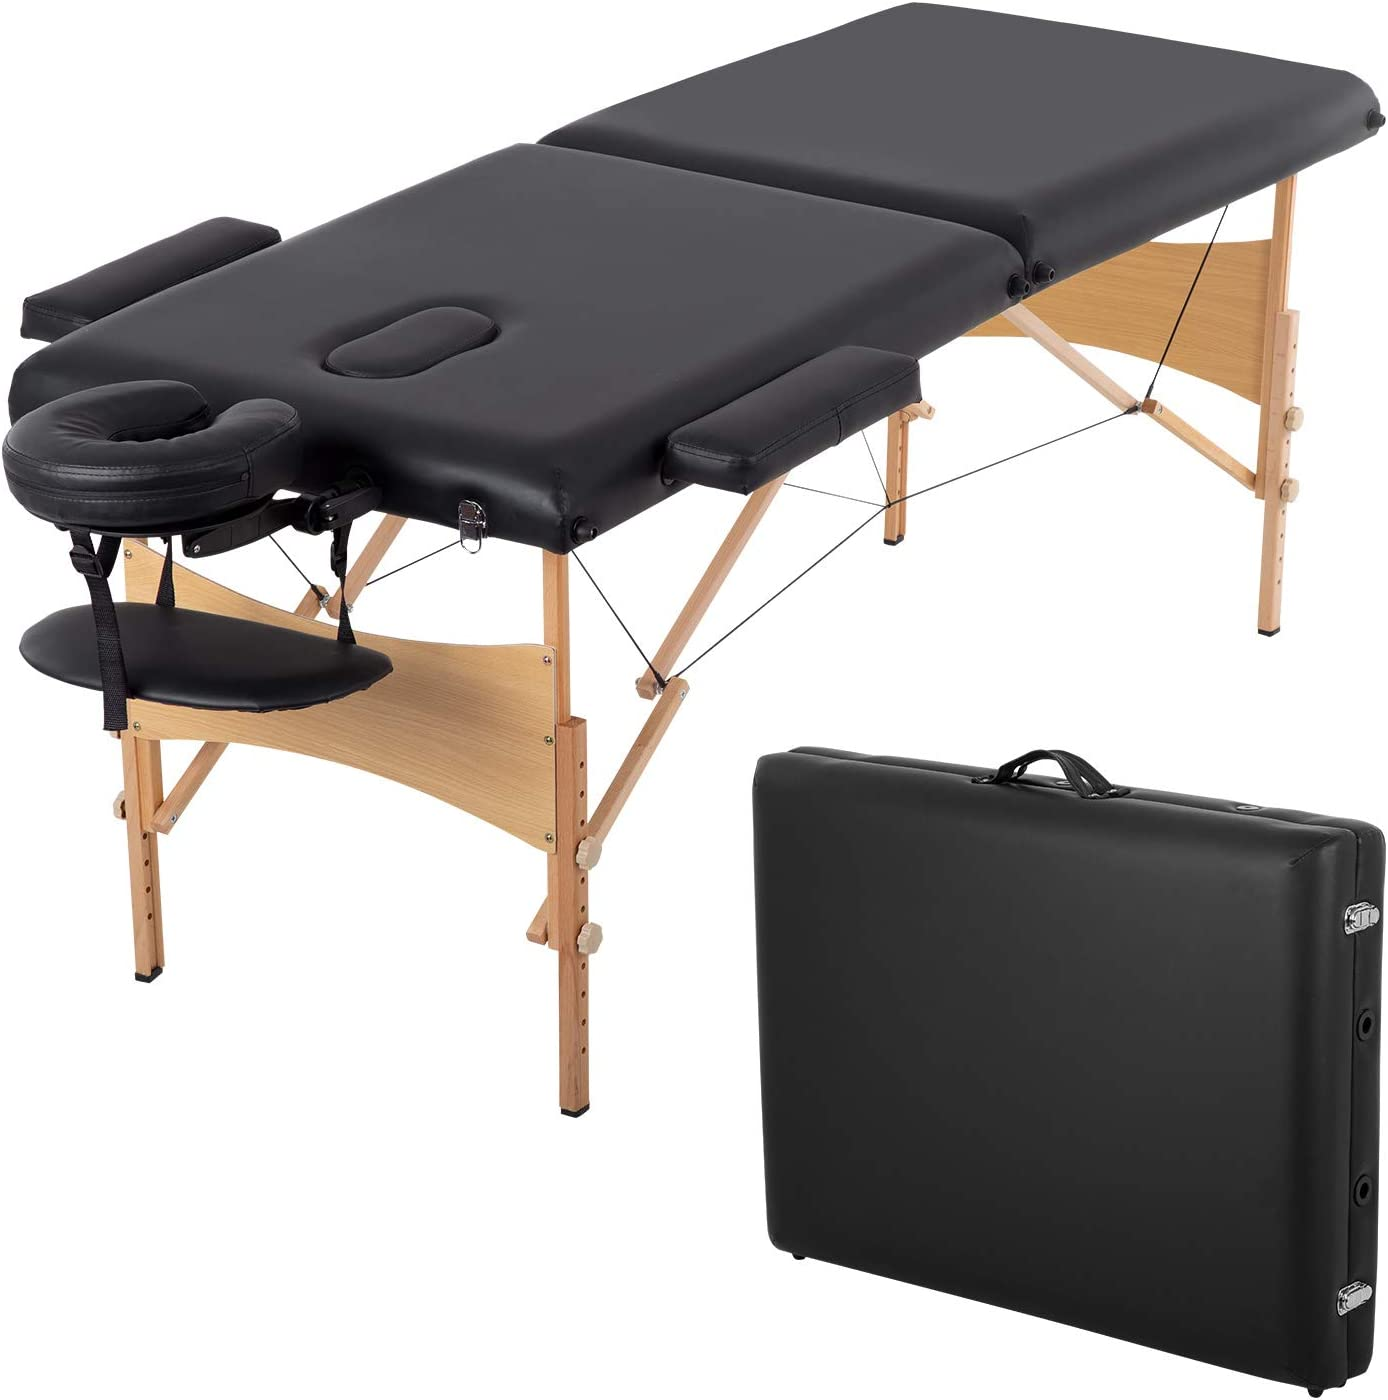 Massage Table Lash Bed Adjustable Height Challenge Limited time sale the lowest price of Japan ☆ Mas SPA